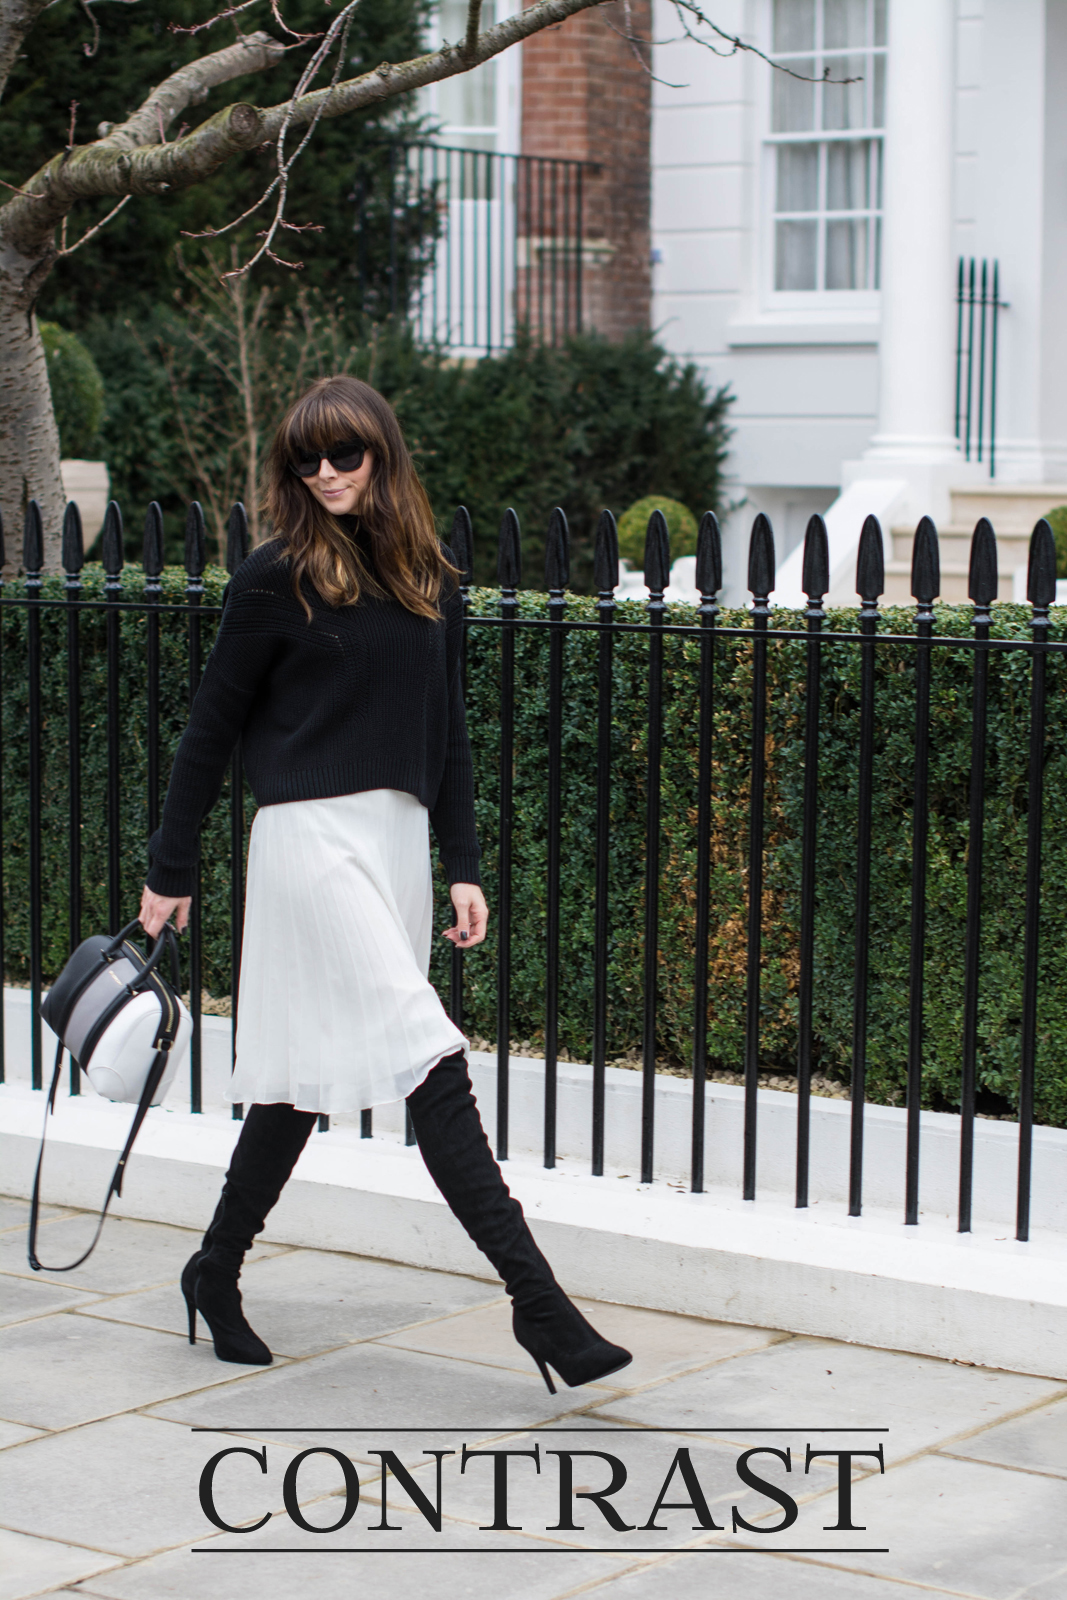 EJSTYLE - Black Topshop jumper, White pleated asos midi skirt, Givenchy lucrezia mini bag, Next OTK boots, monochrome OOTD, fashion blogger Emma Hill, 2